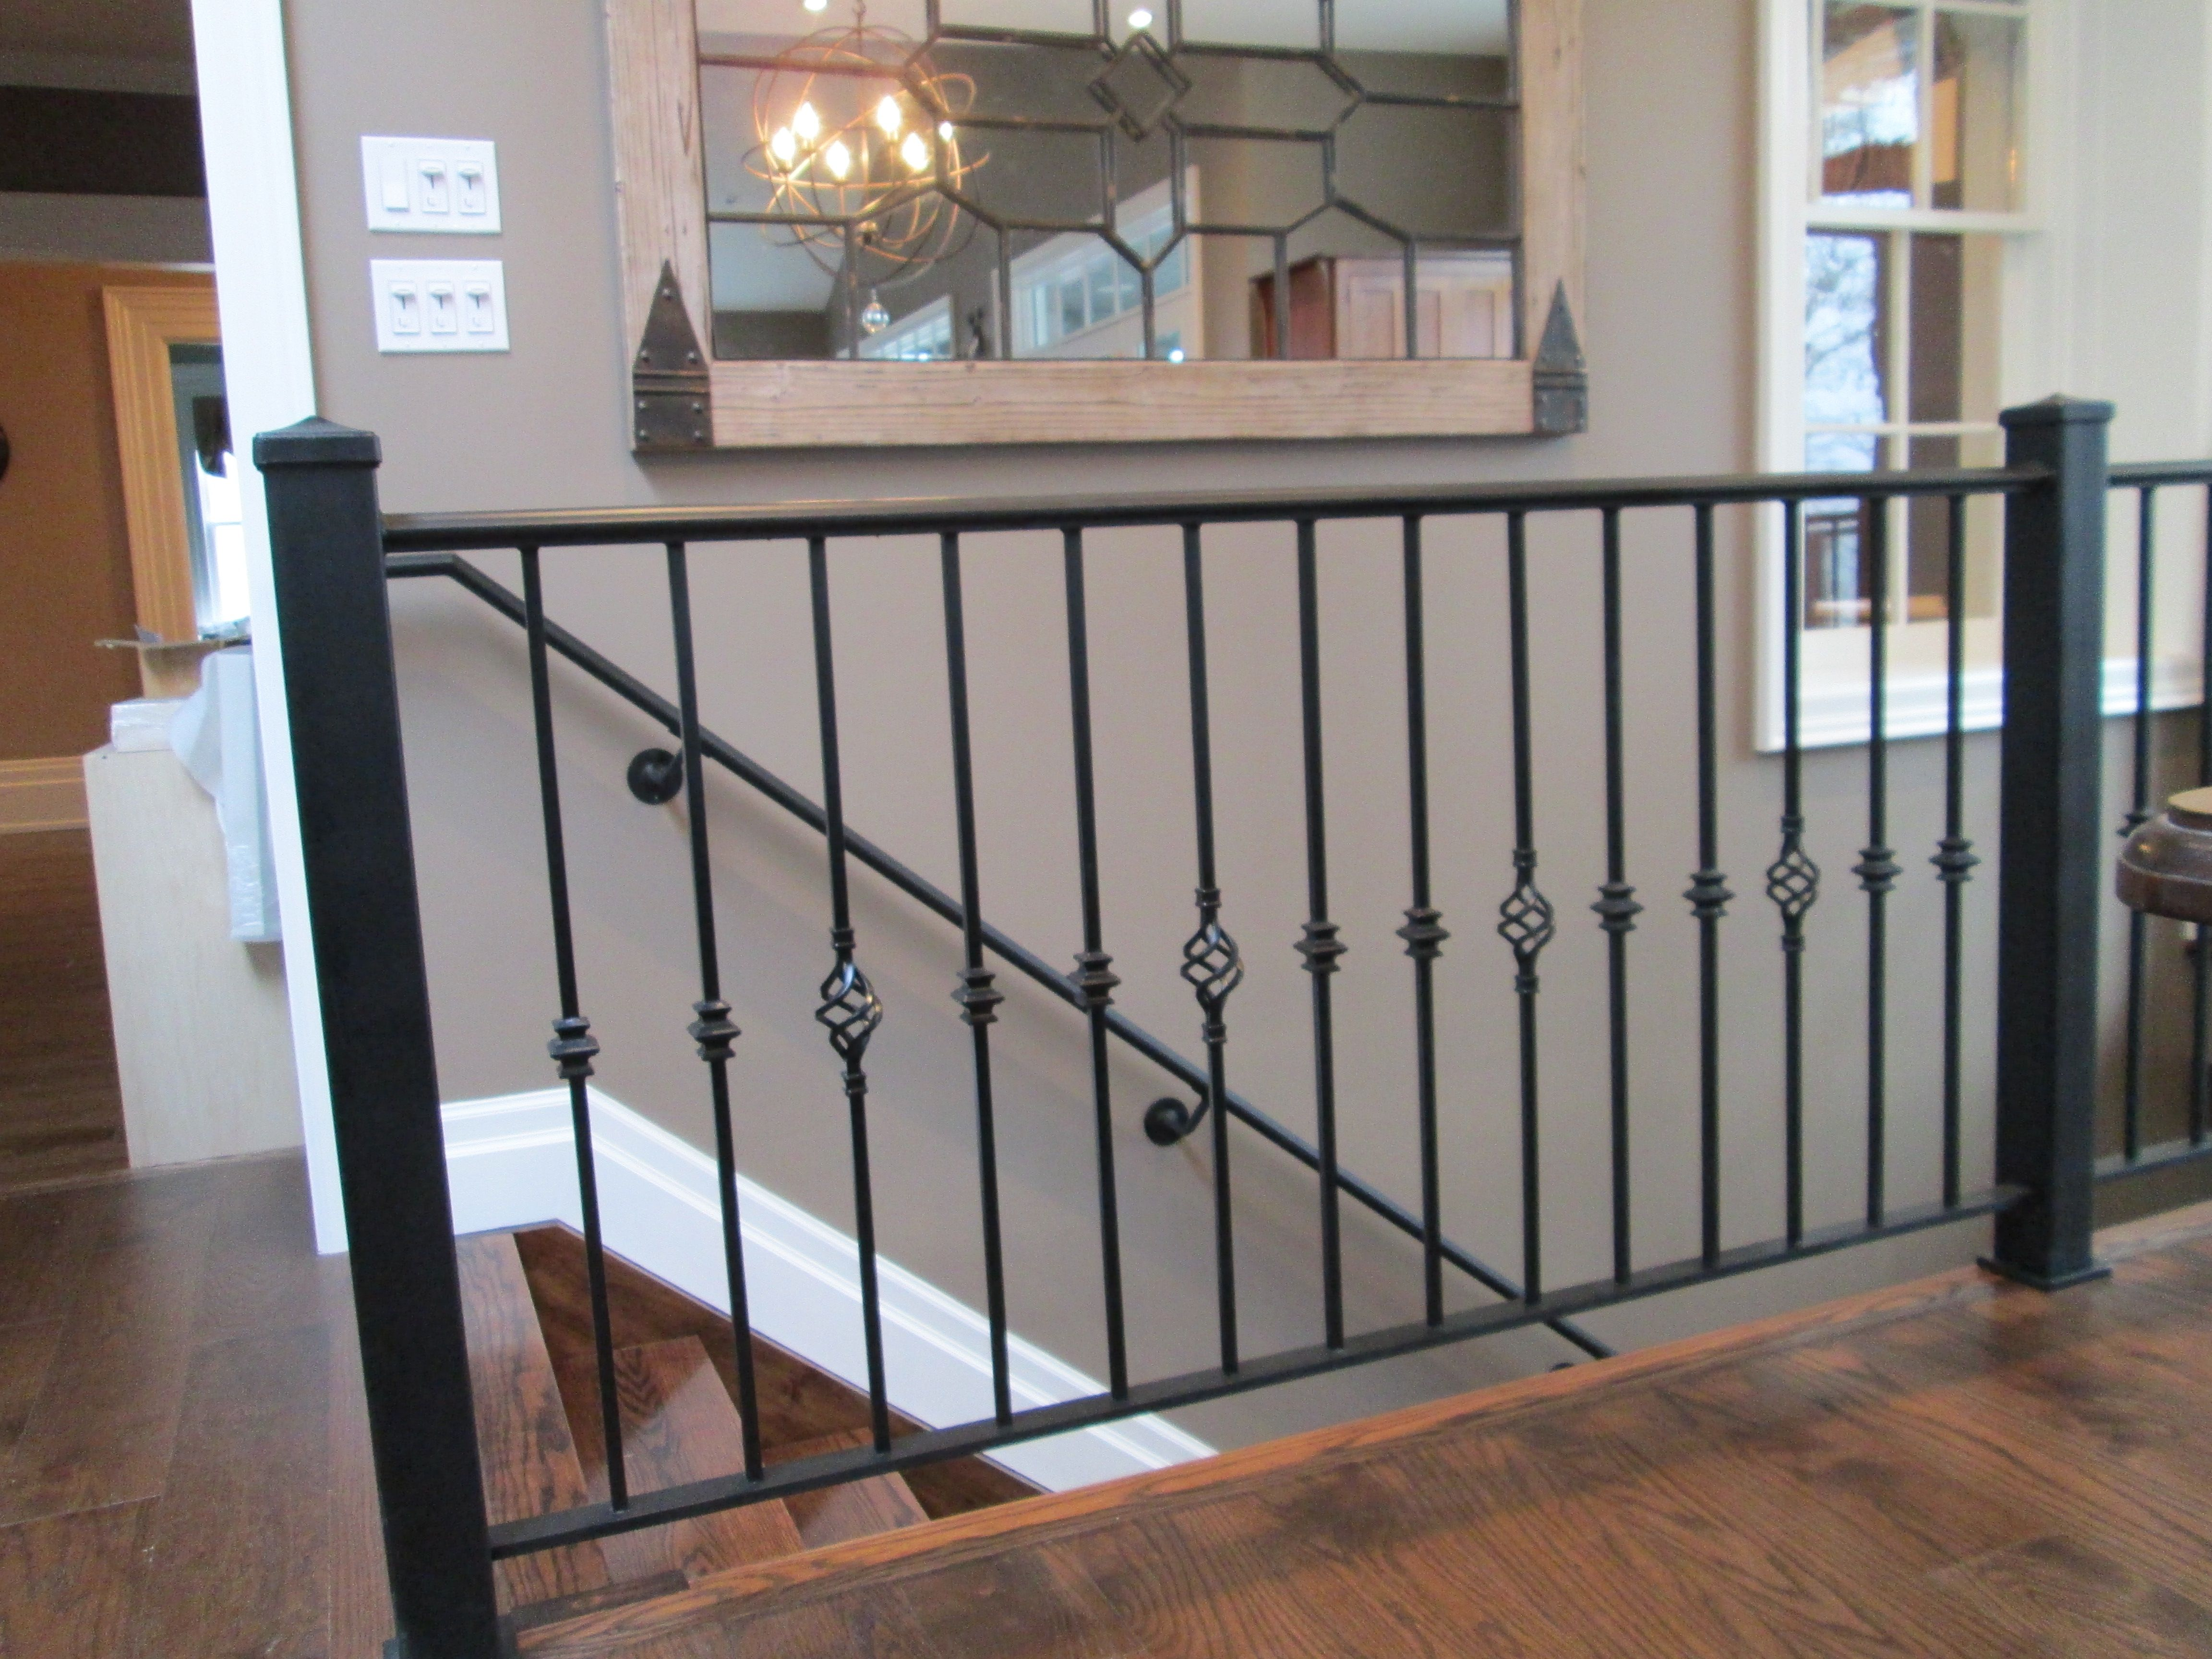 decorative railings. wrought iron railing with decorative collared pickets alternating a basket picket railings n